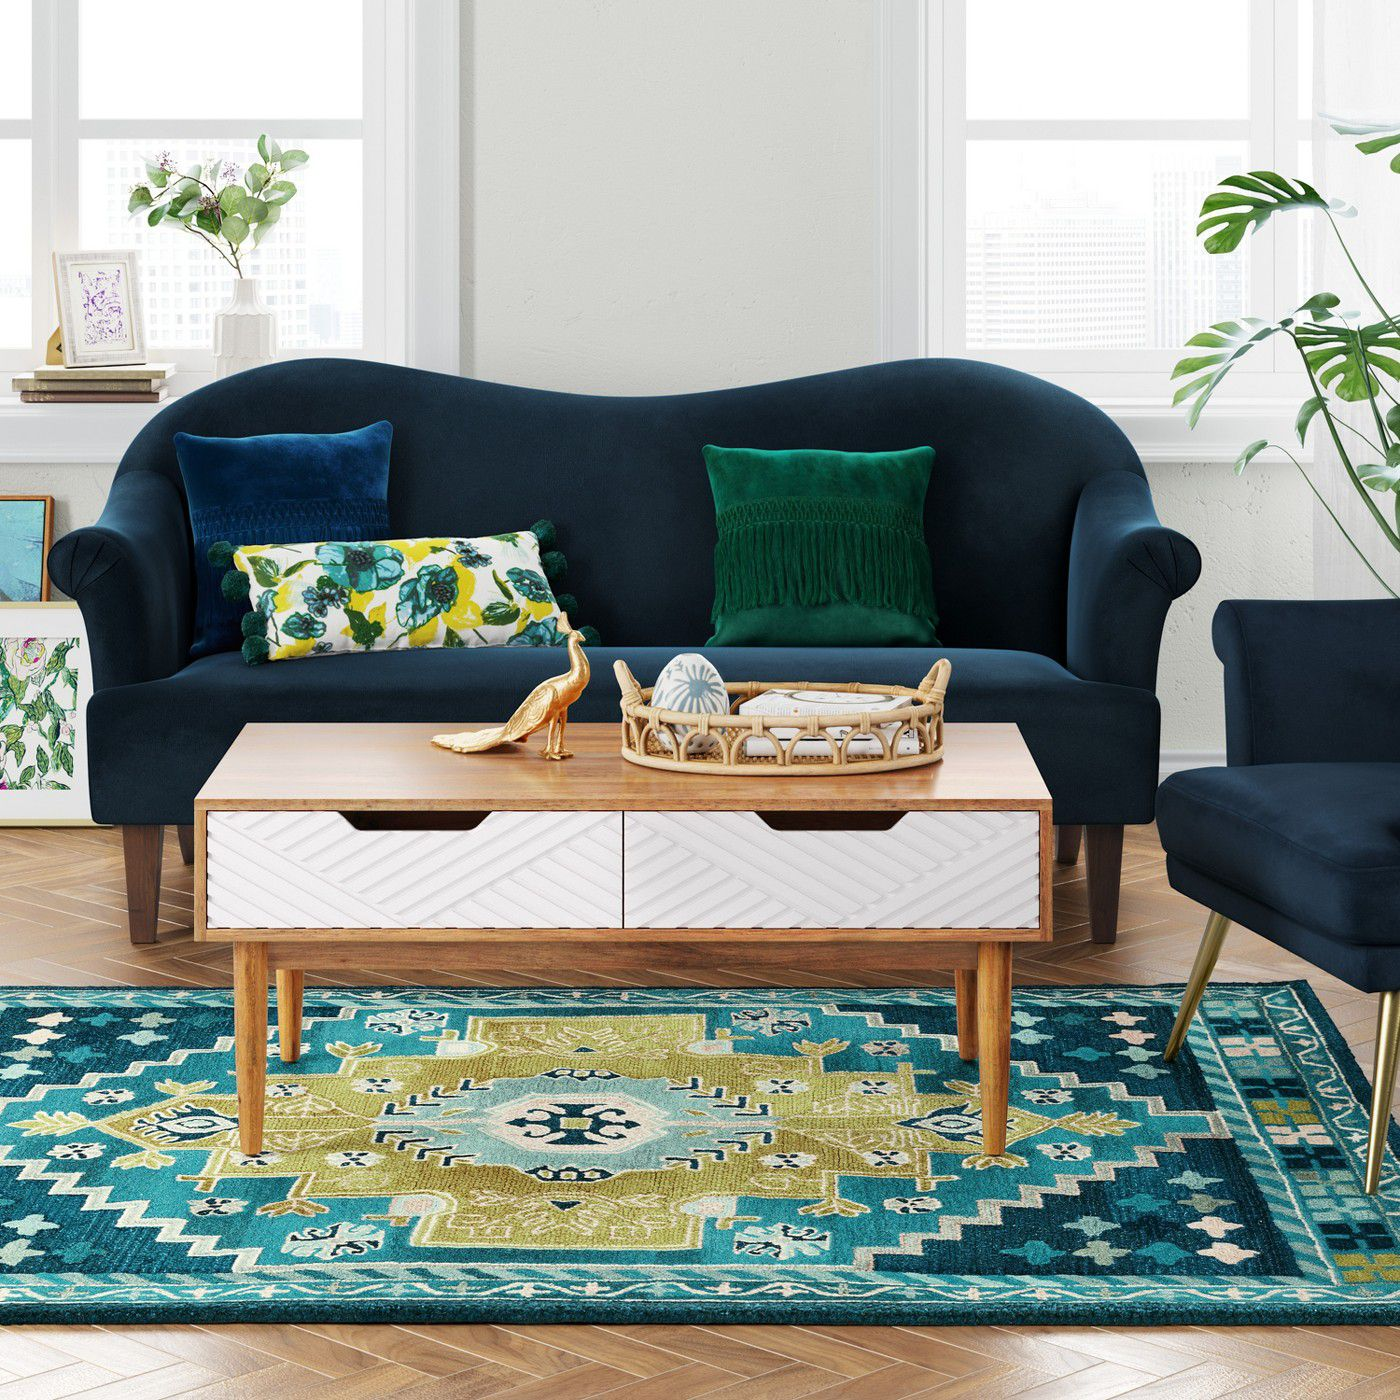 the prettiest items from target newest homeware line persian rug opalhouse side table dark wood bedside gingham tablecloths patio umbrella base black and white dining contemporary